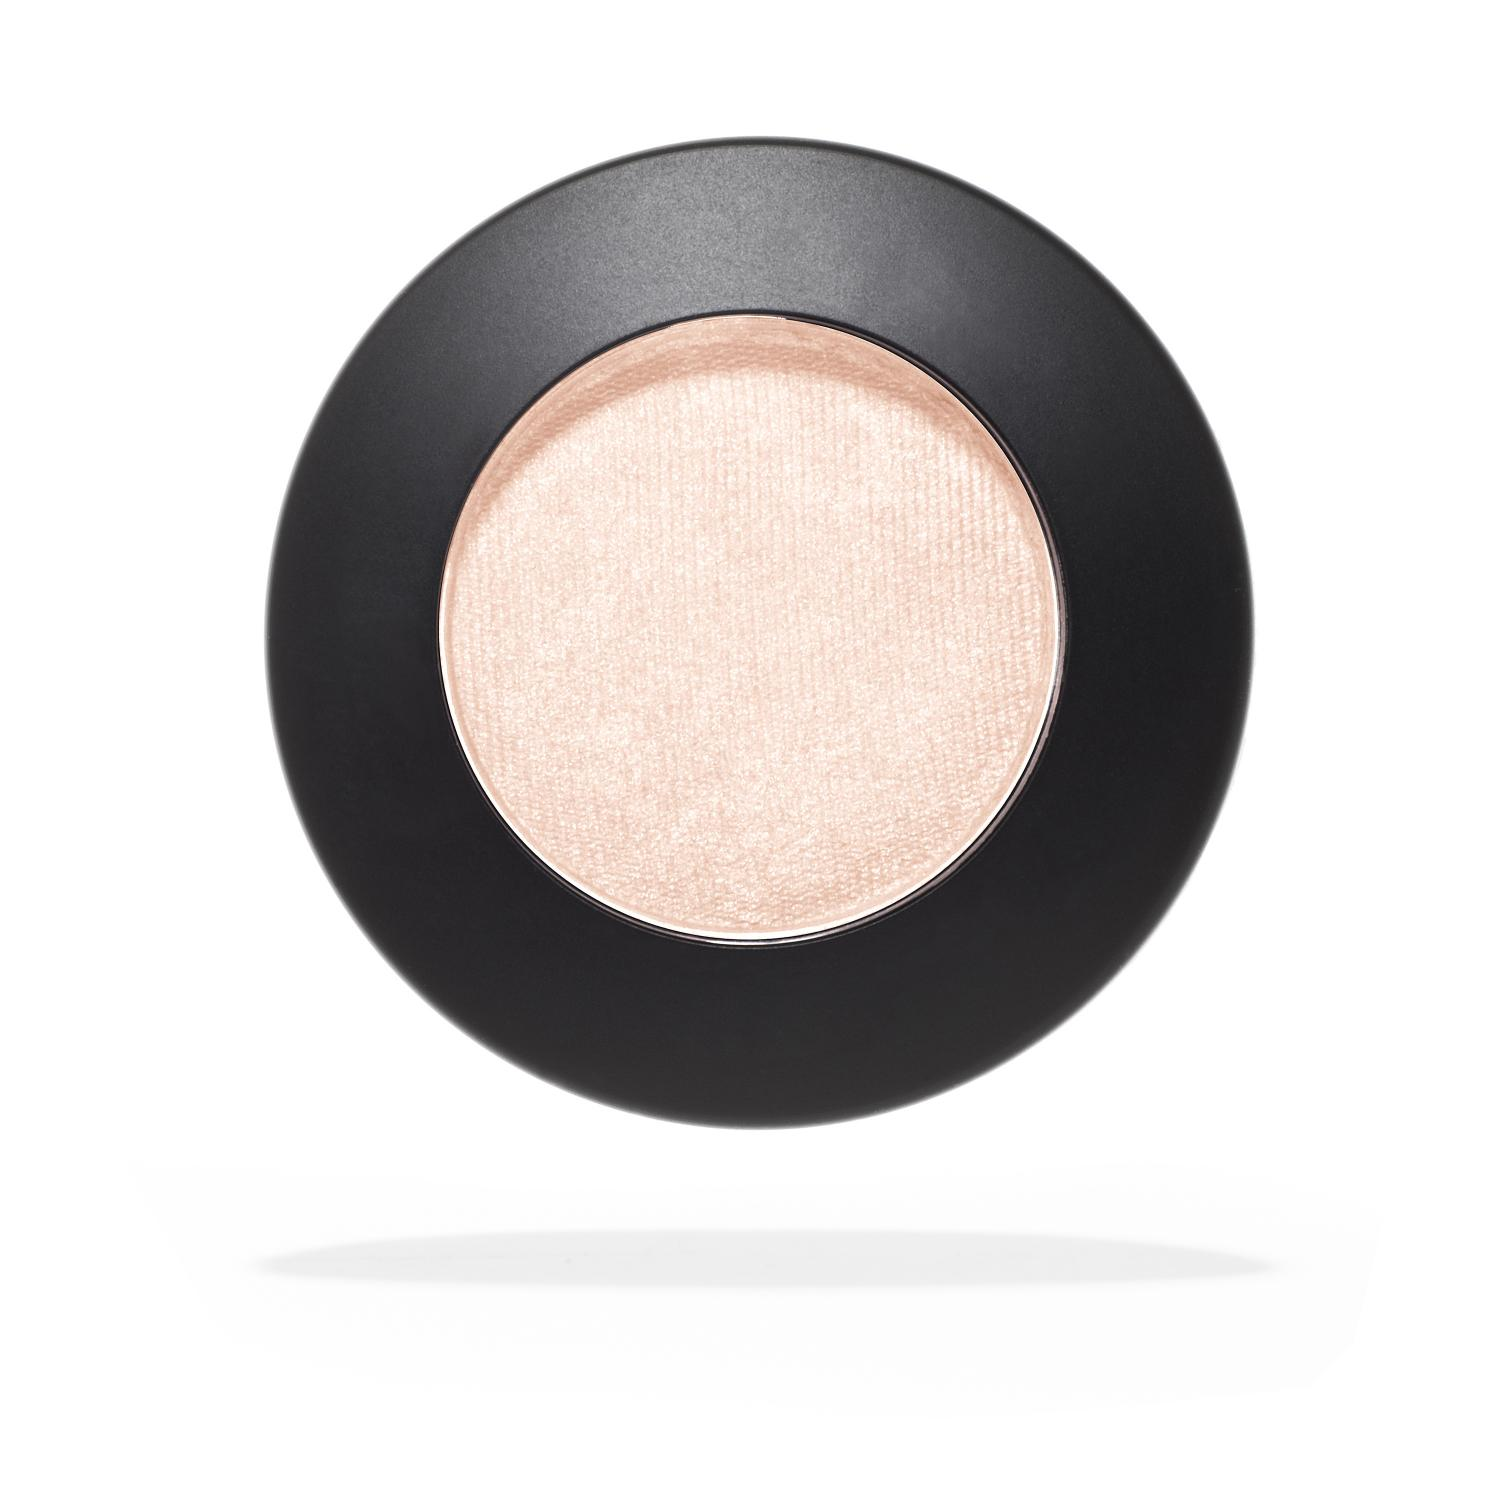 NECT - MICRONIZED EYE SHADOW